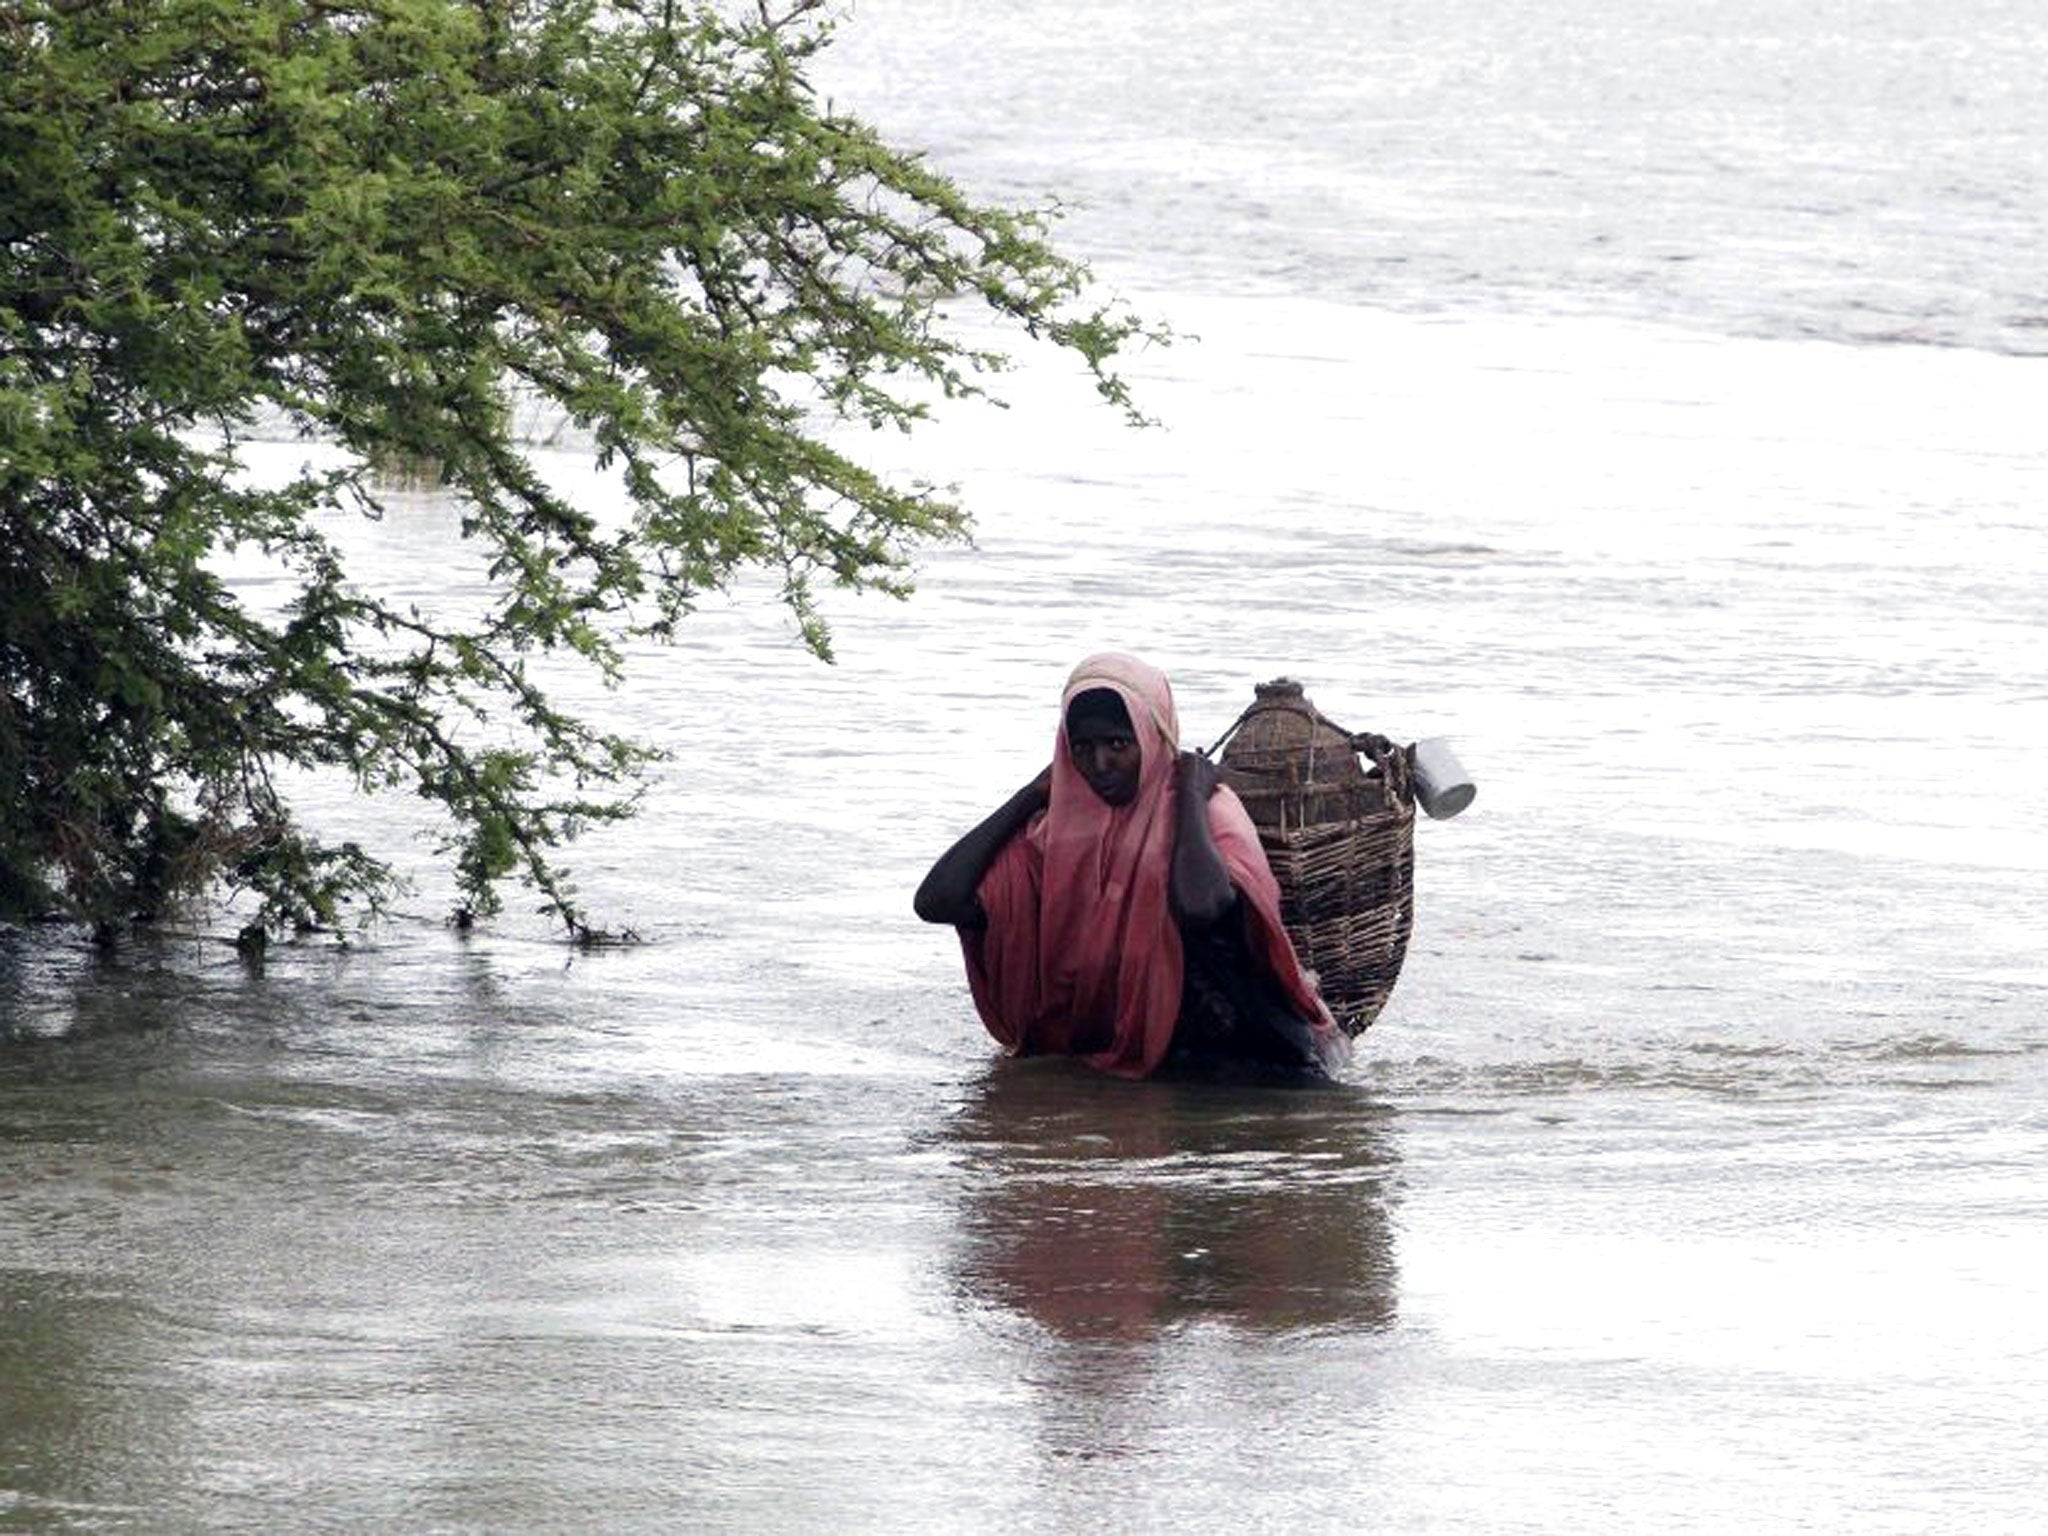 In pictures: Floods displace thousands people in Somalia